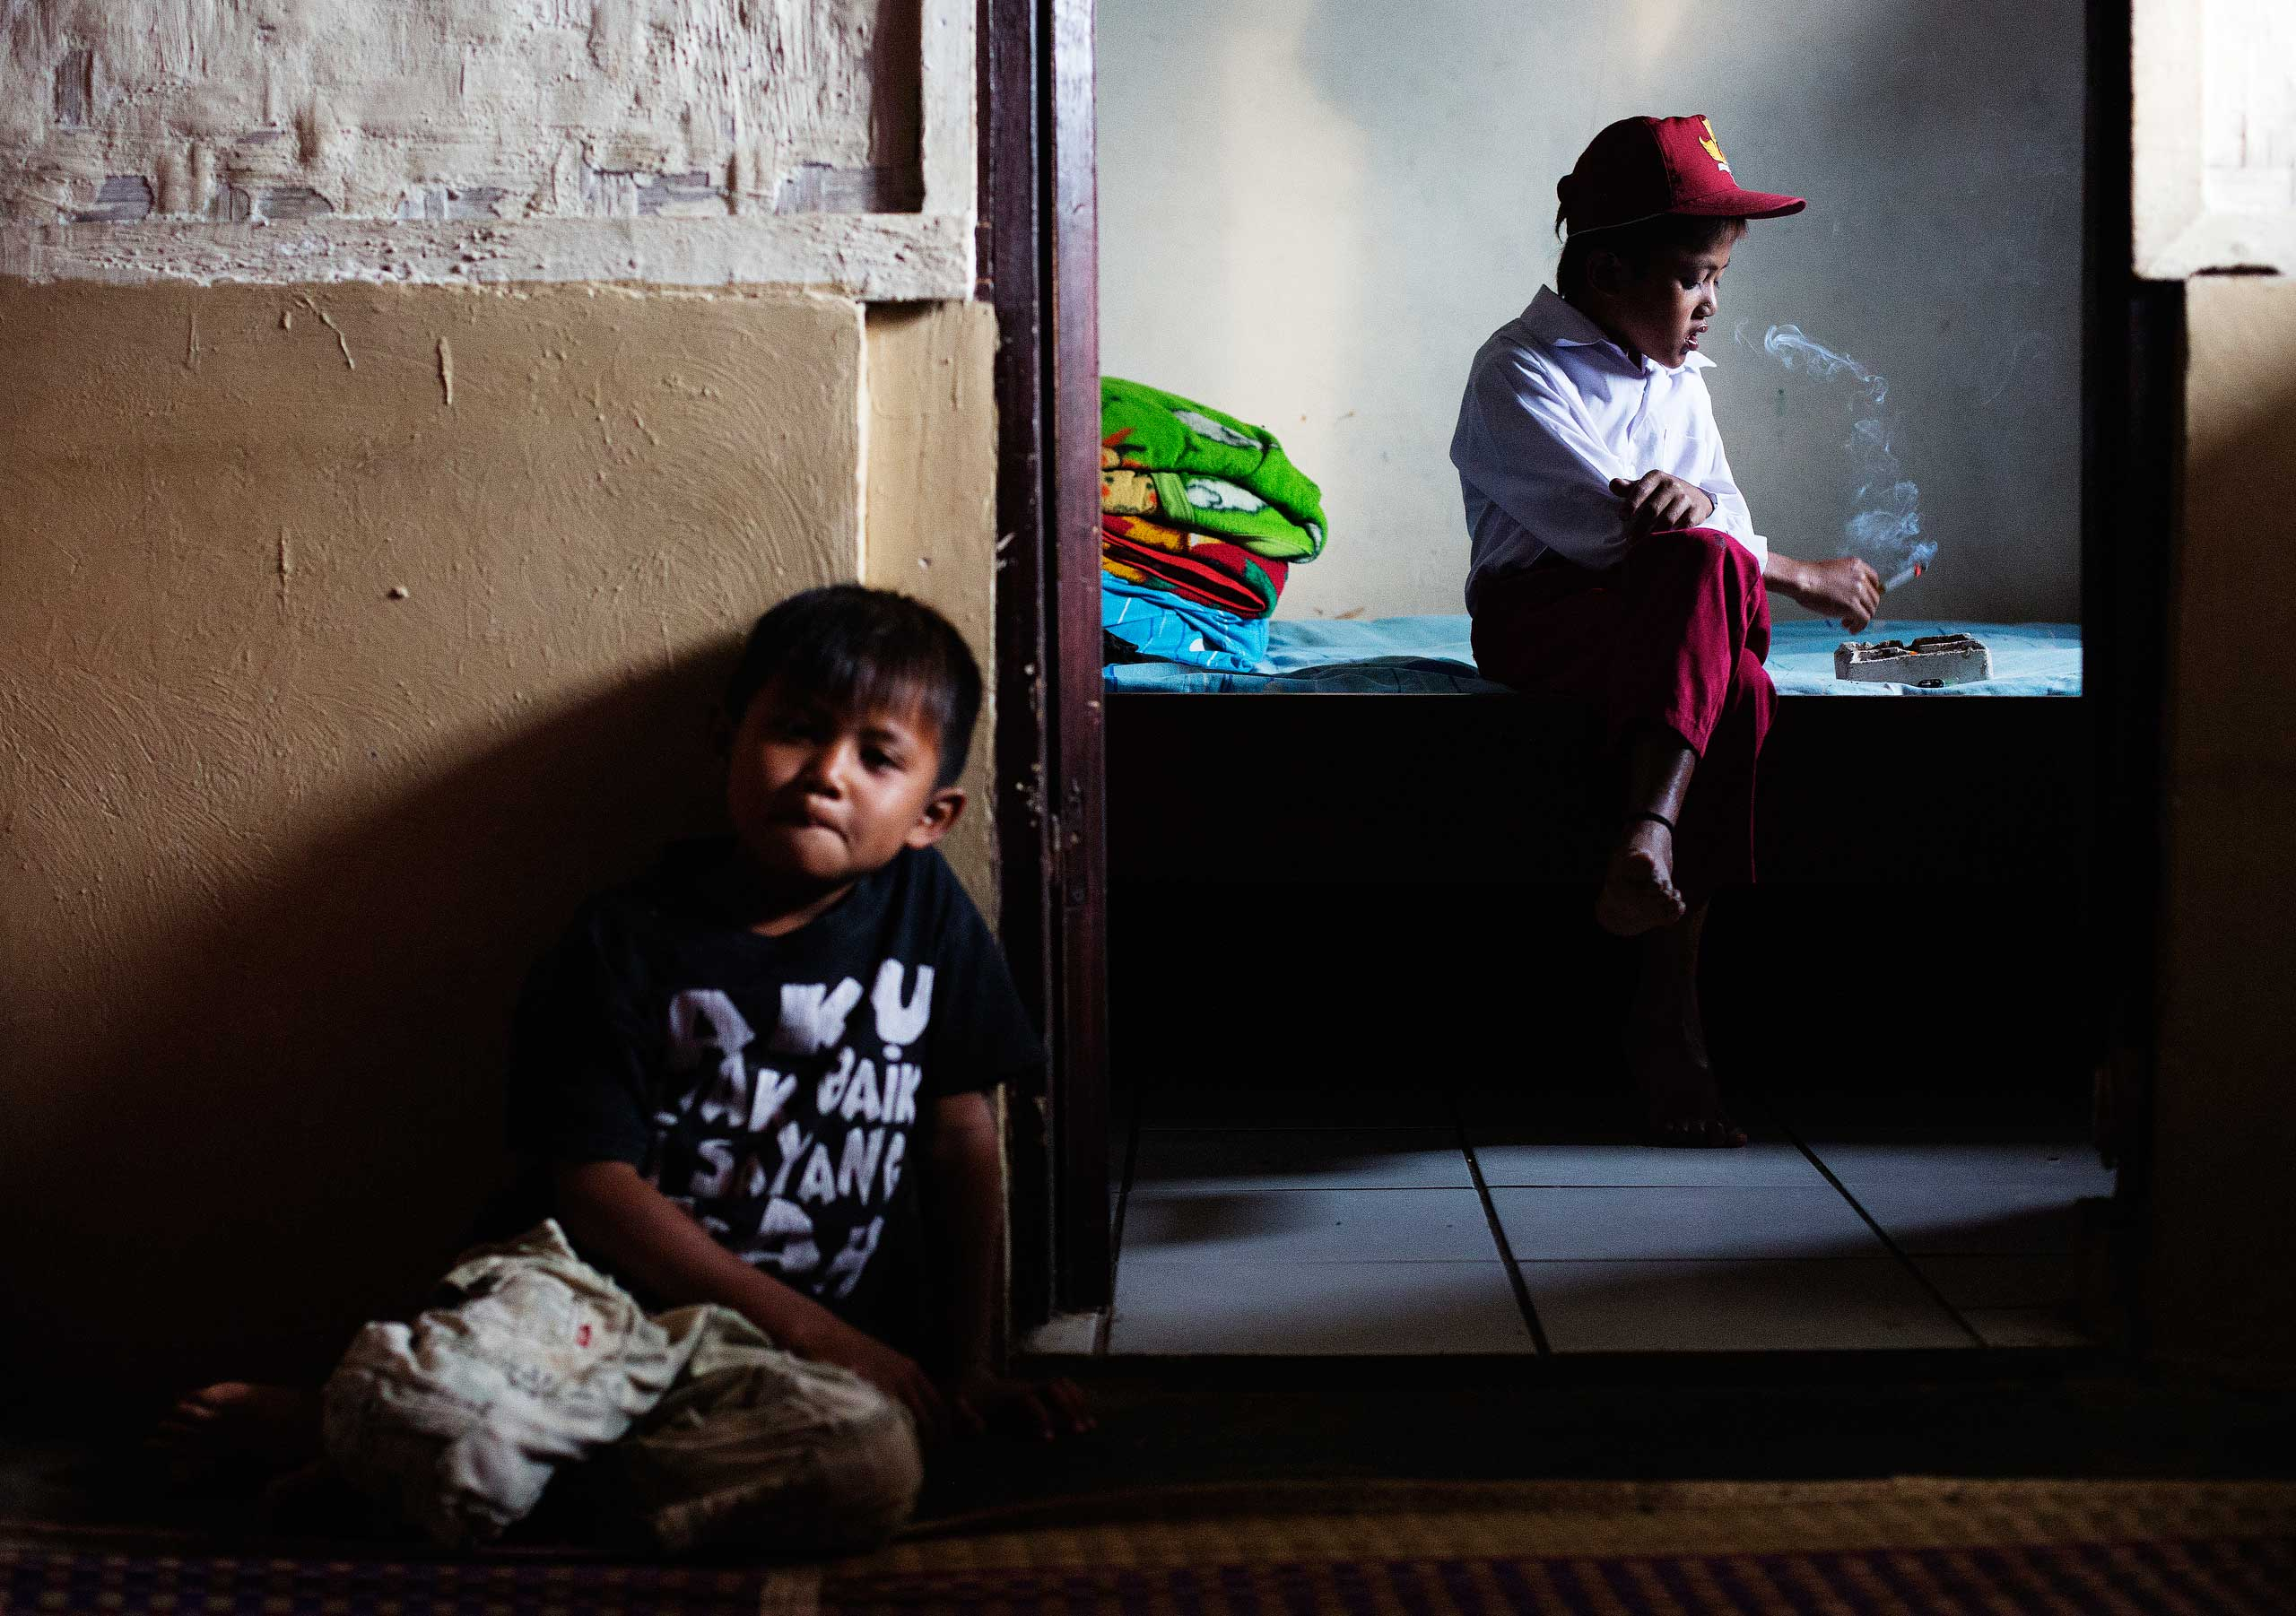 Ilham Hadi, who has smoked up to two packs a day and began when he was four years old, poses for a photo wearing his third grade uniform while smoking in his bedroom as his younger brother looks on in their village near the town of Sukabumi, Indonesia on February 14, 2014.